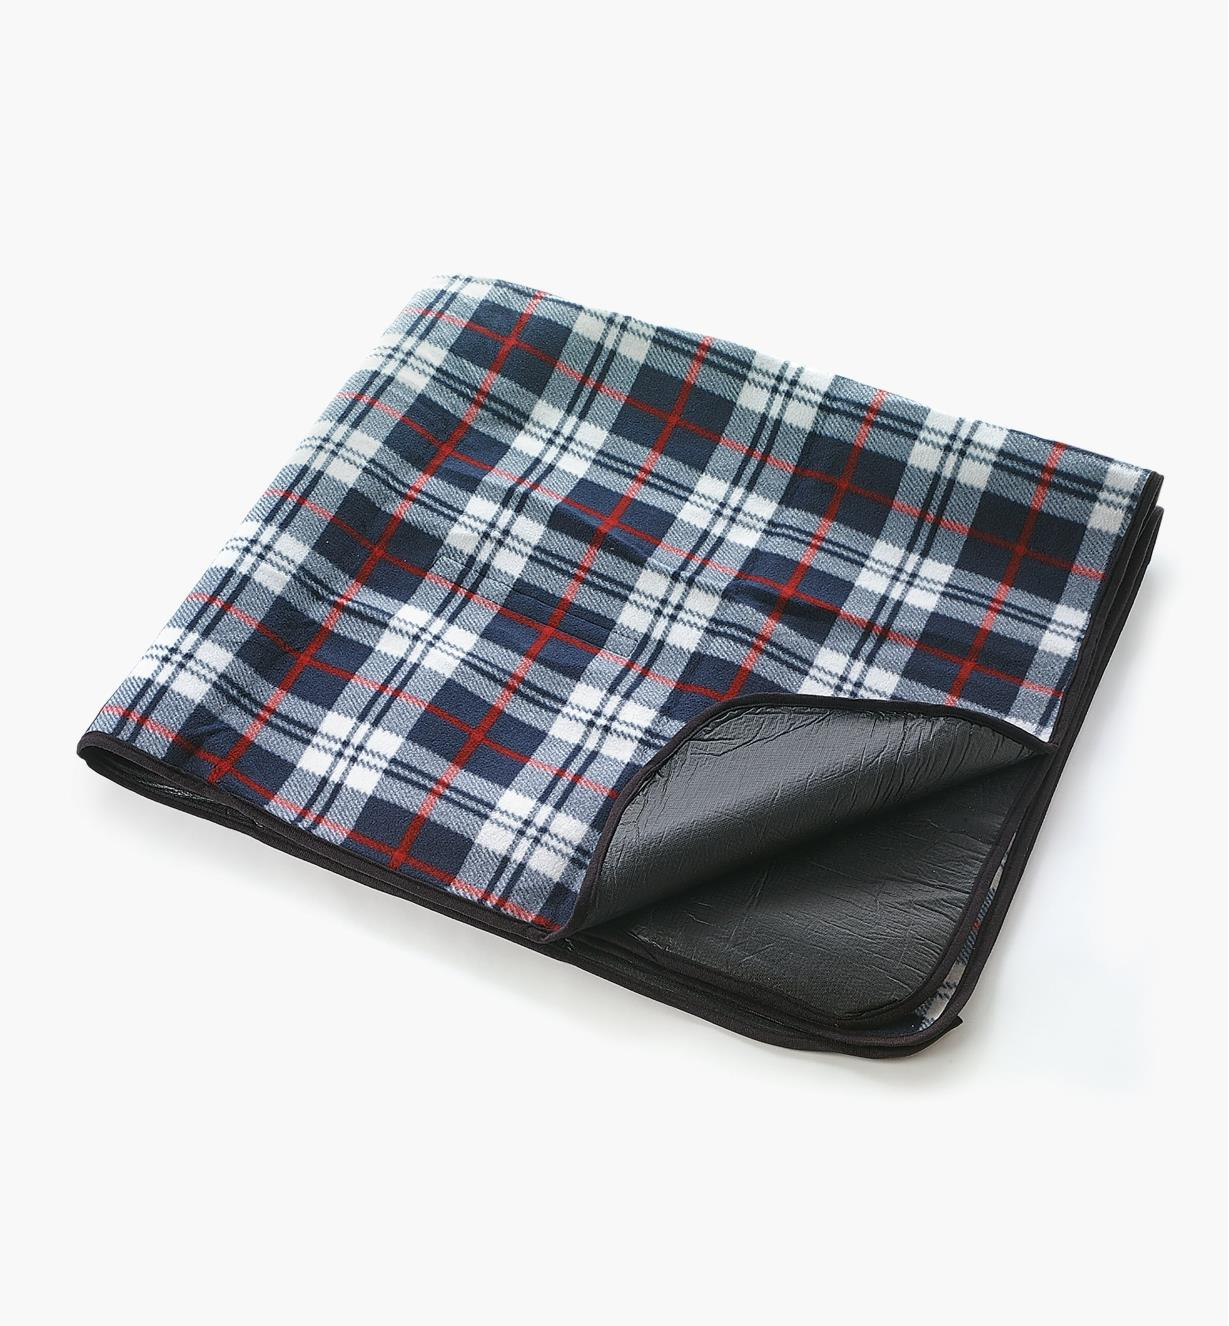 09A0472 - Tartan Outdoor Lined Blanket